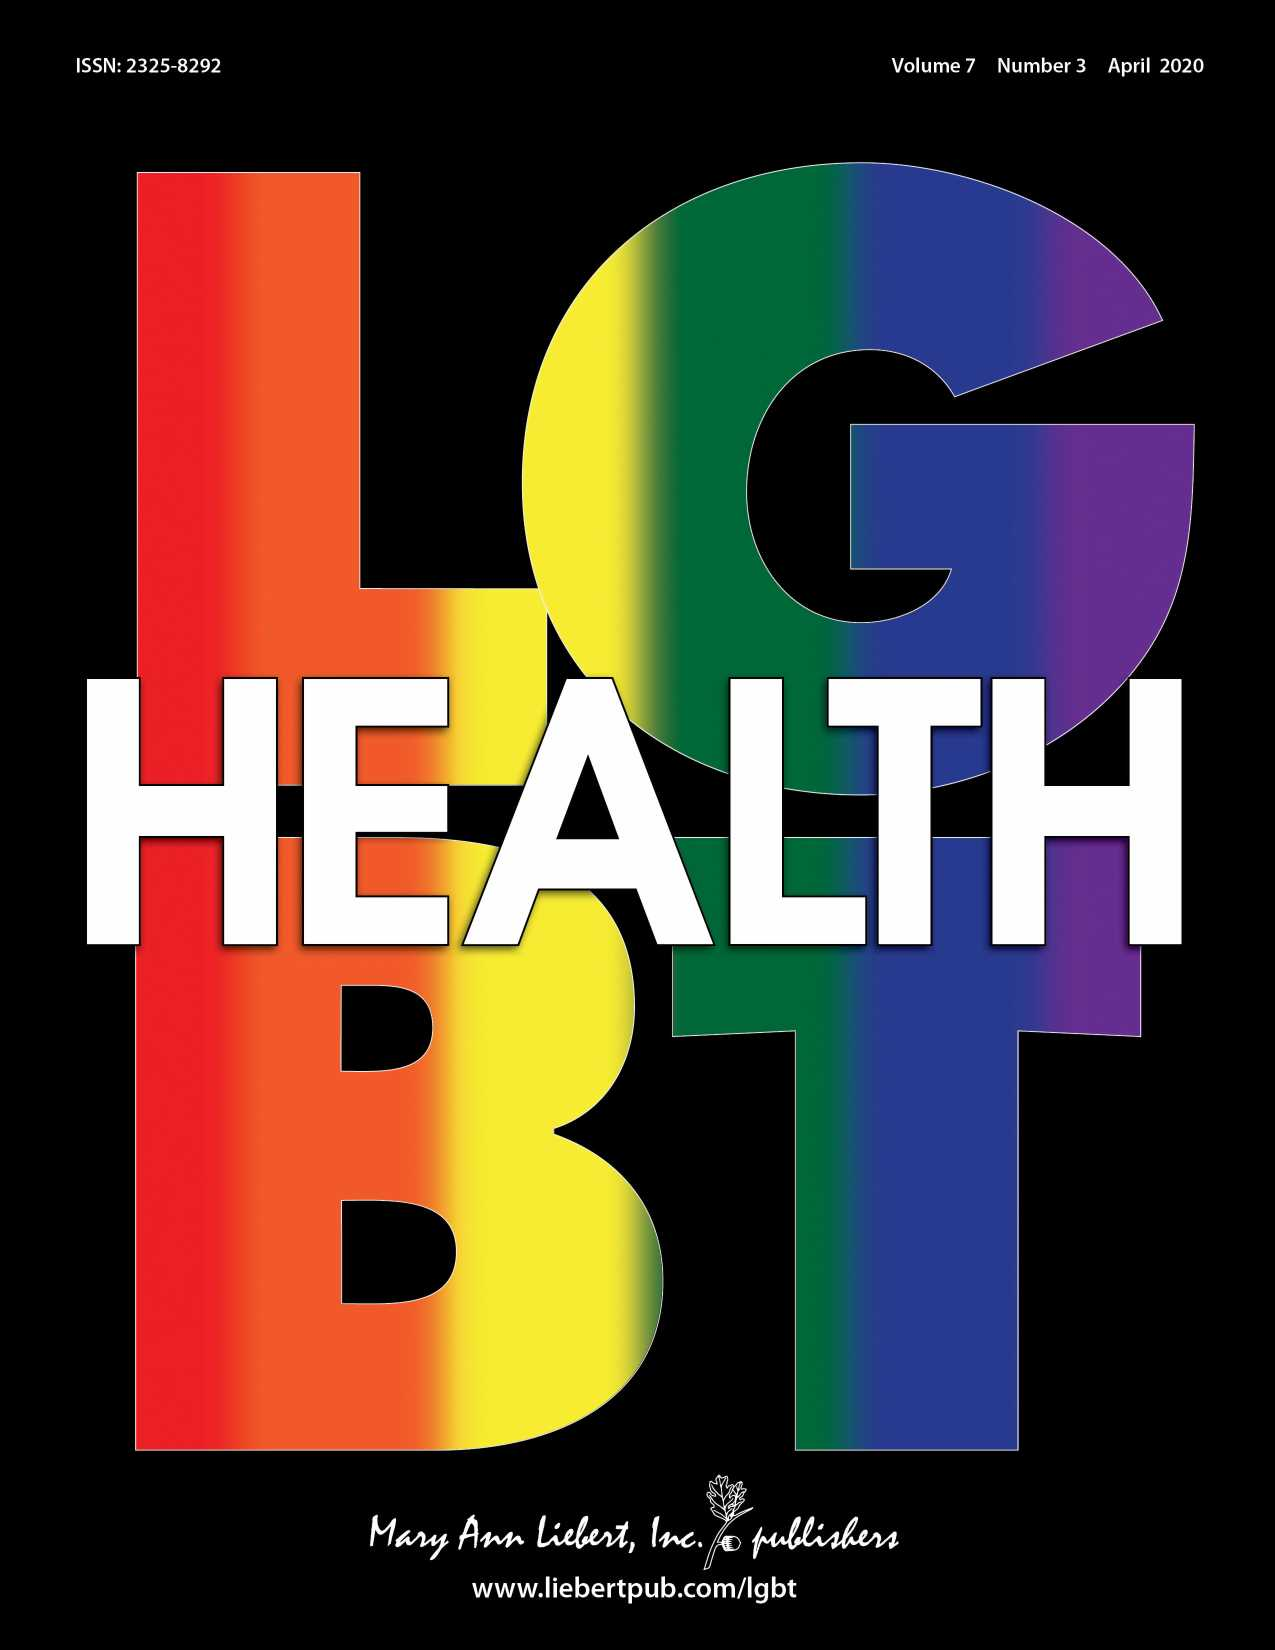 Medicare coverage varies for transgender hormone therapies